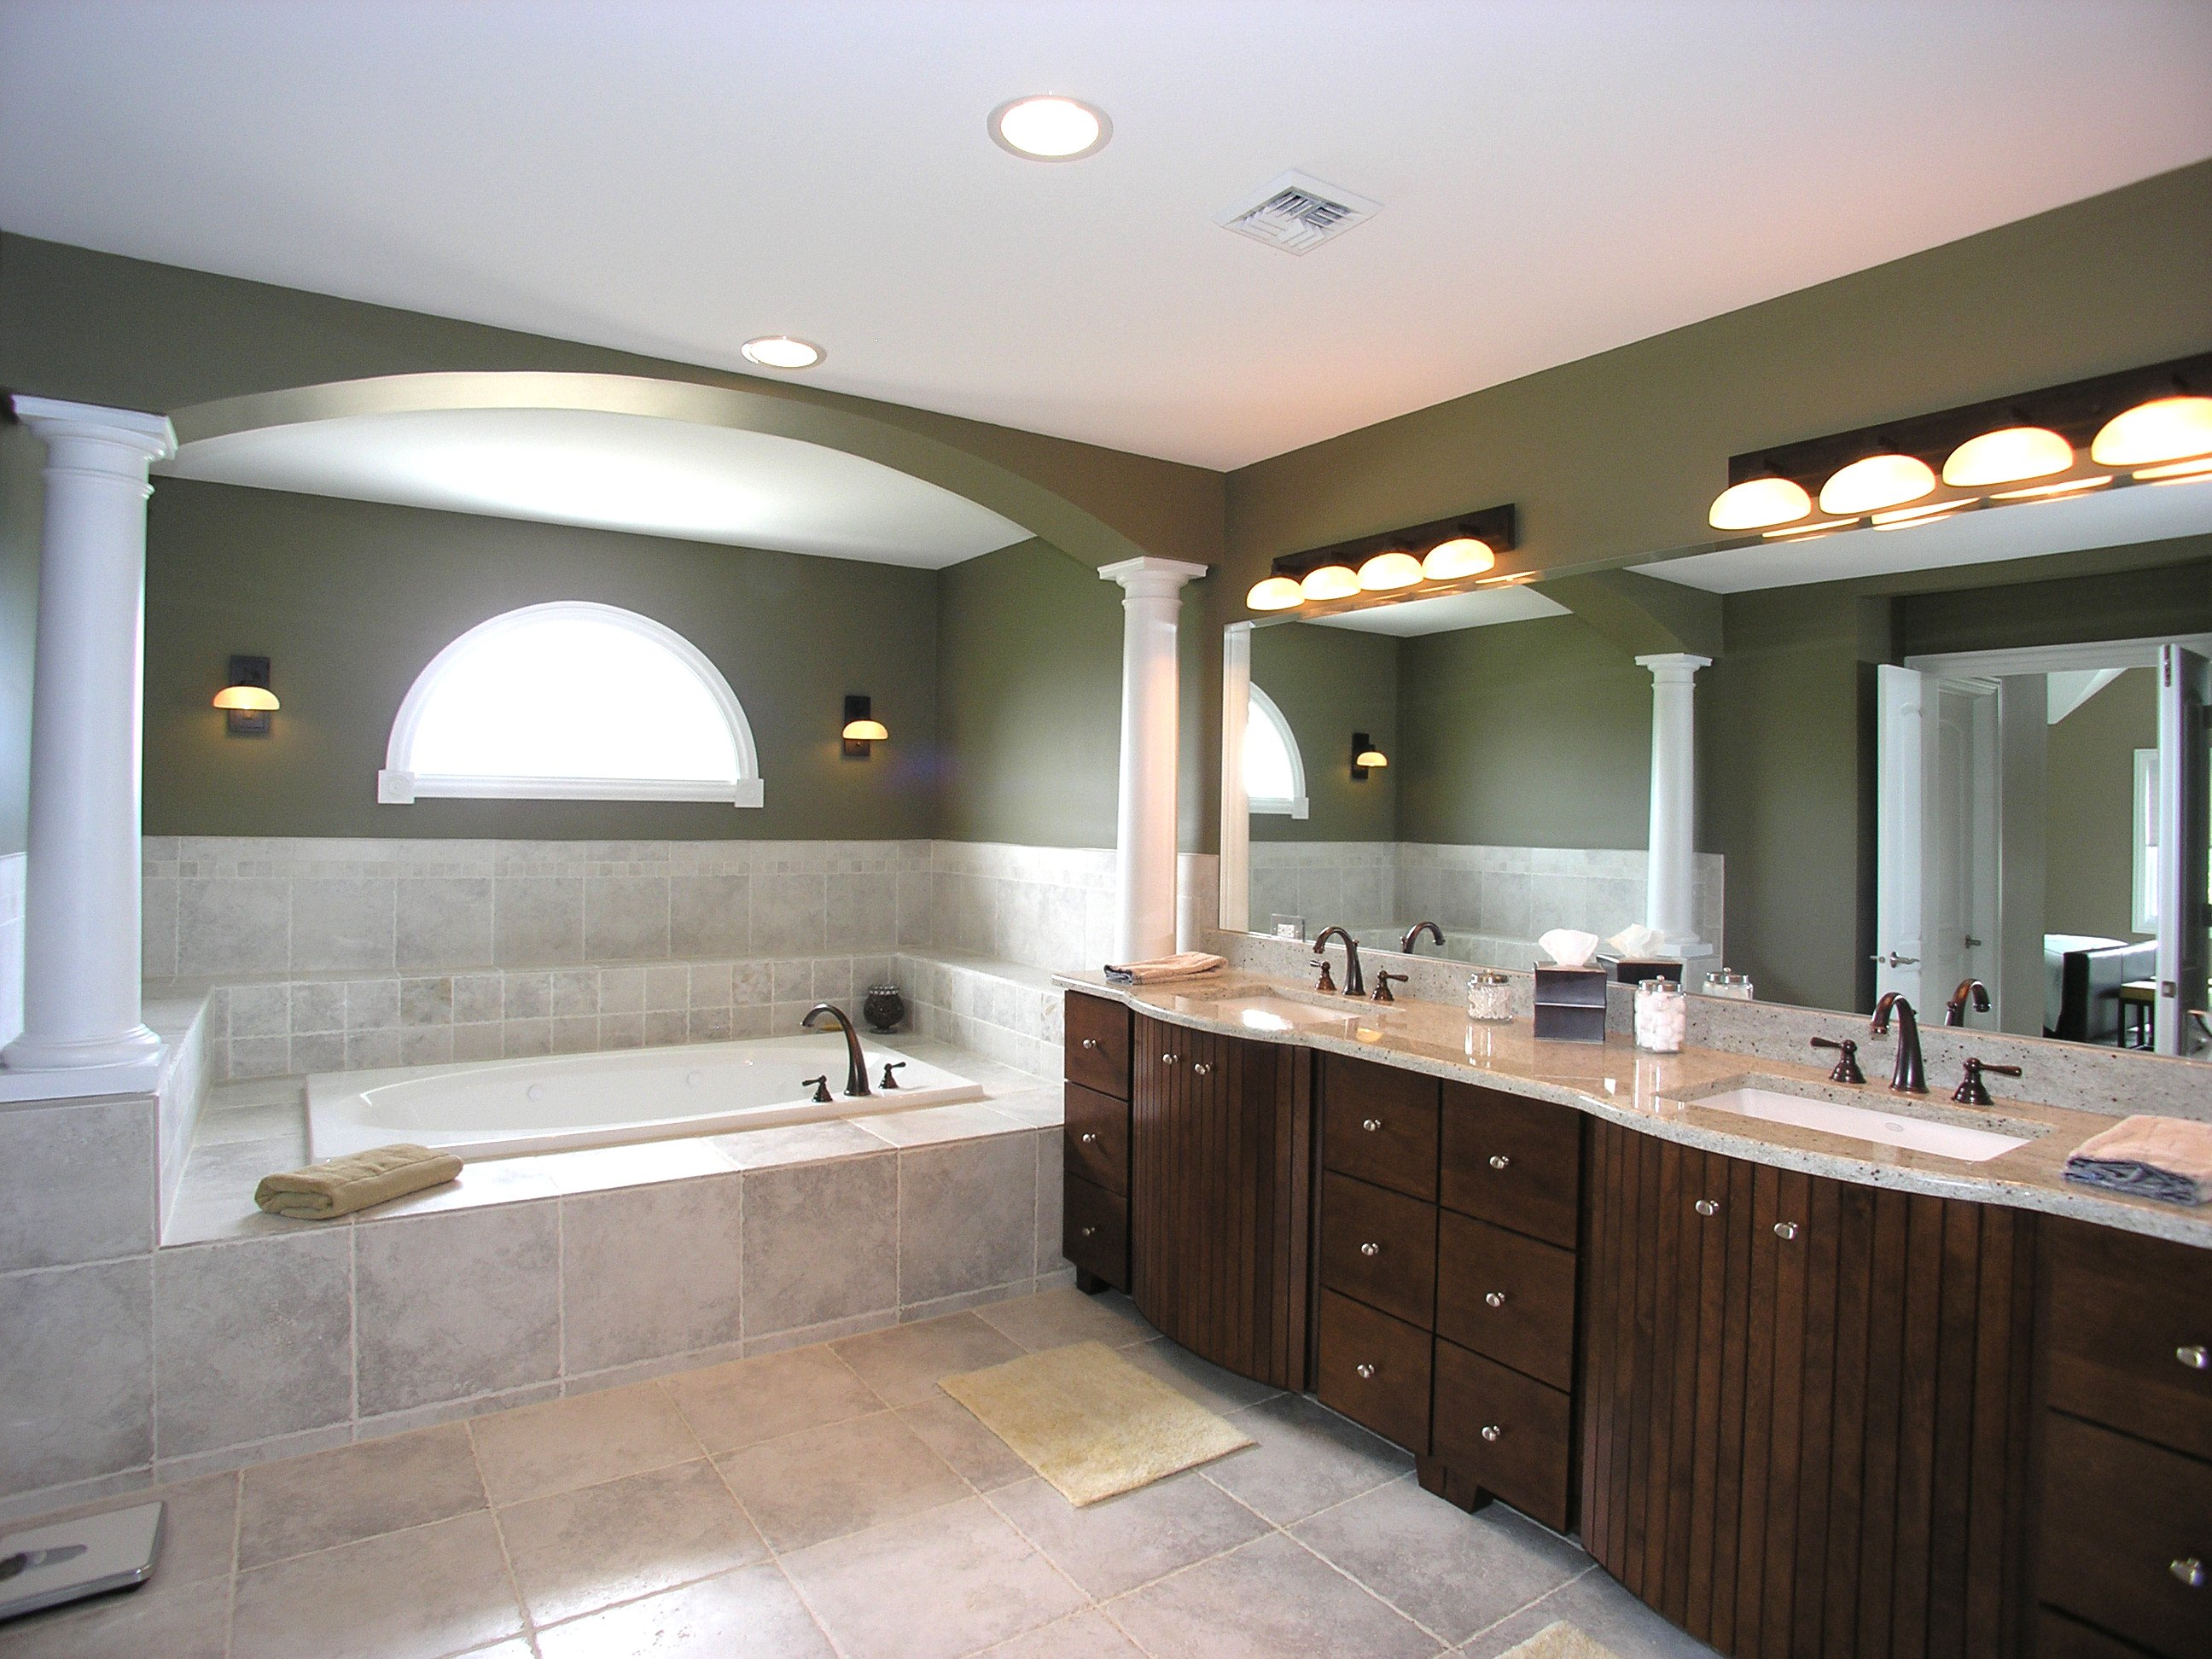 Stunning Master Bathroom Ideas Photo Gallery 2592 x 1944 · 844 kB · jpeg